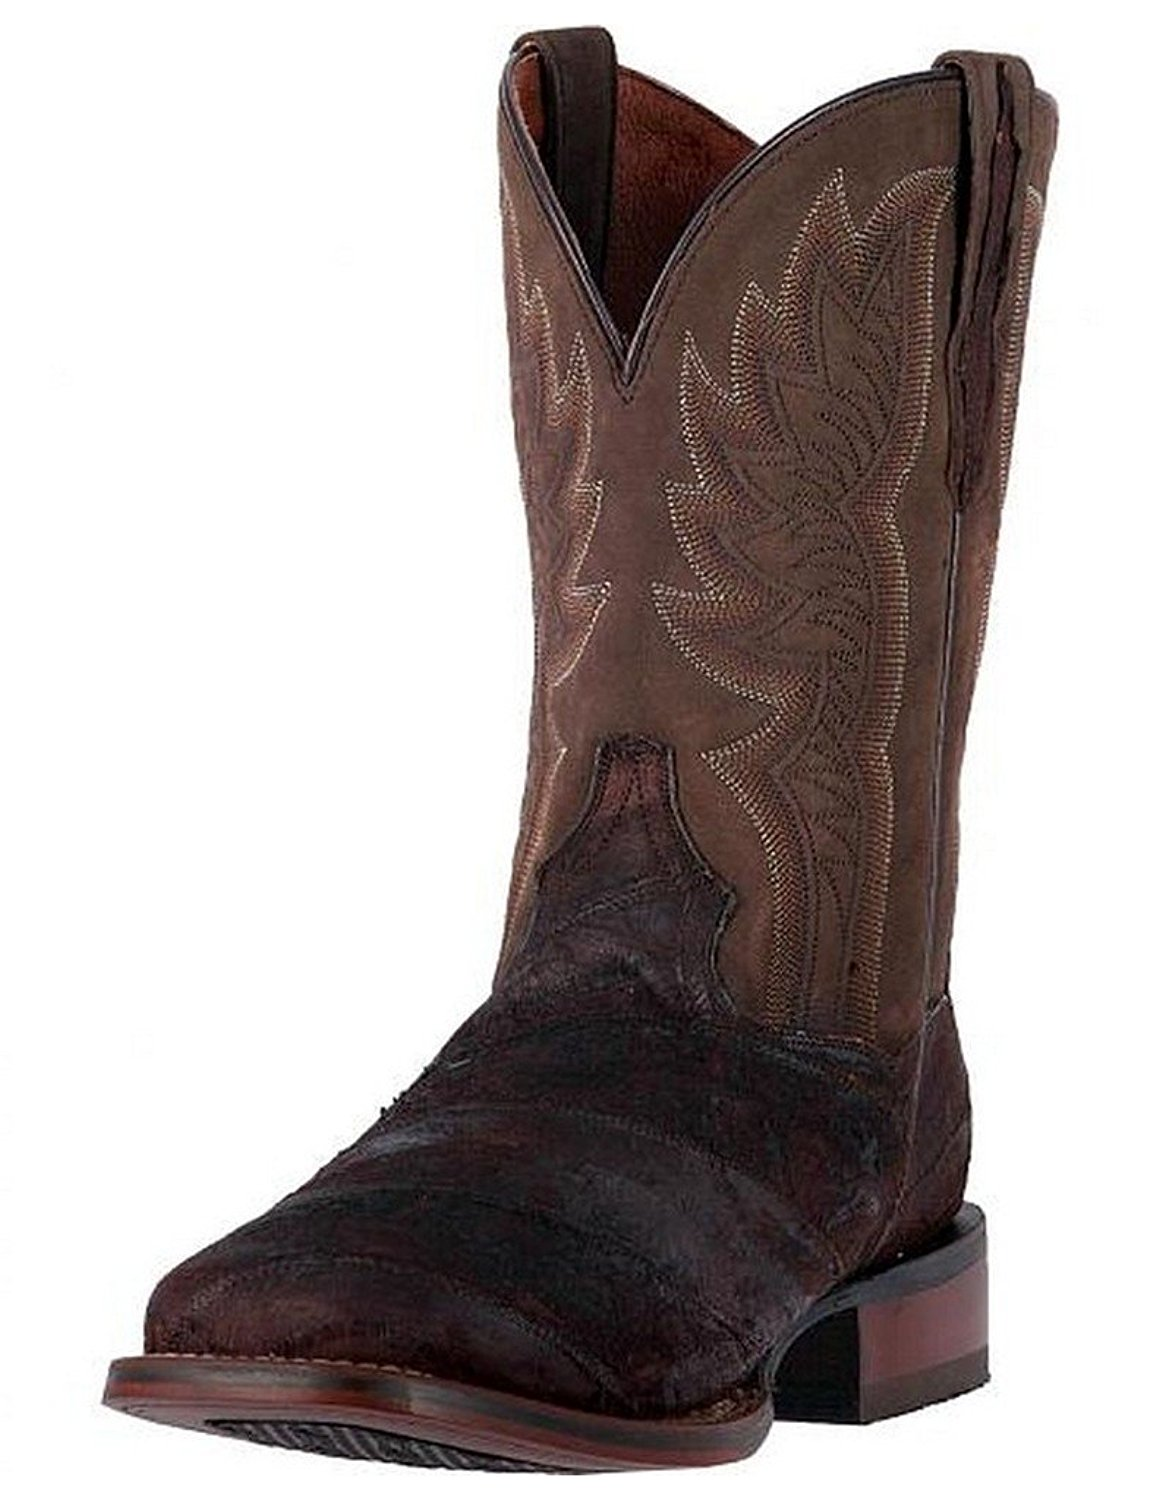 Dan Post Men's 11'' Cade Cowboy Certified Broad Square Toe Western Fashion Boots Brown Leather 8 EW by